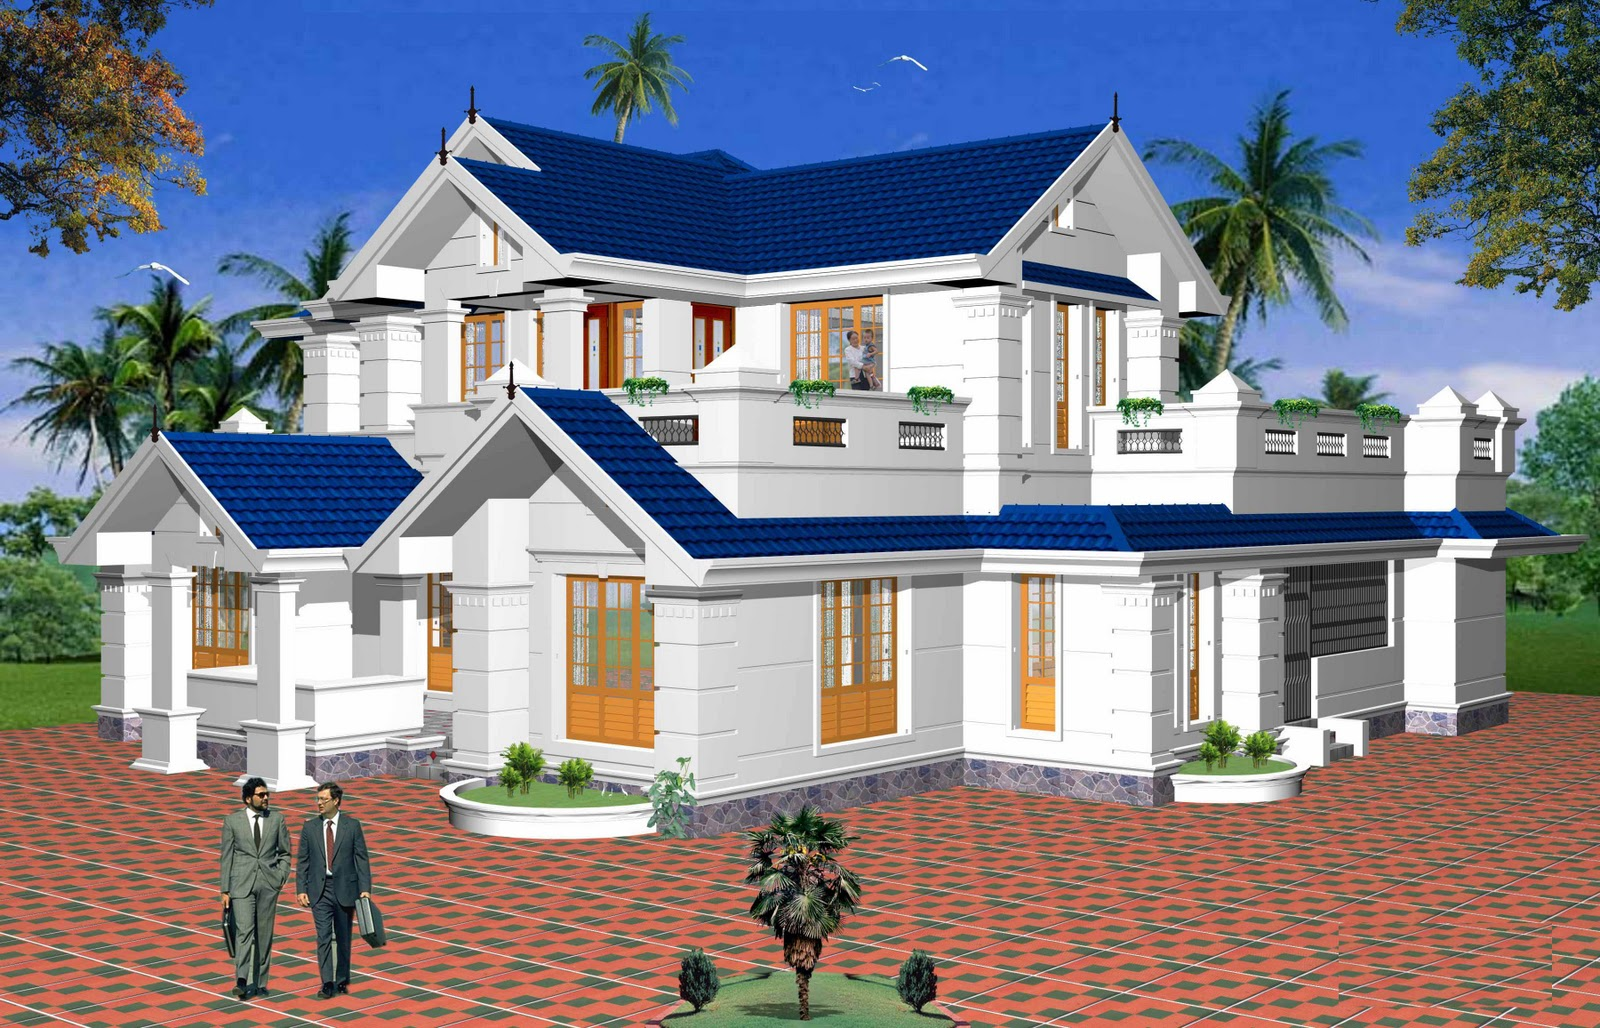 Excellent Architectural Design Home House Plans 1600 x 1028 · 451 kB · jpeg